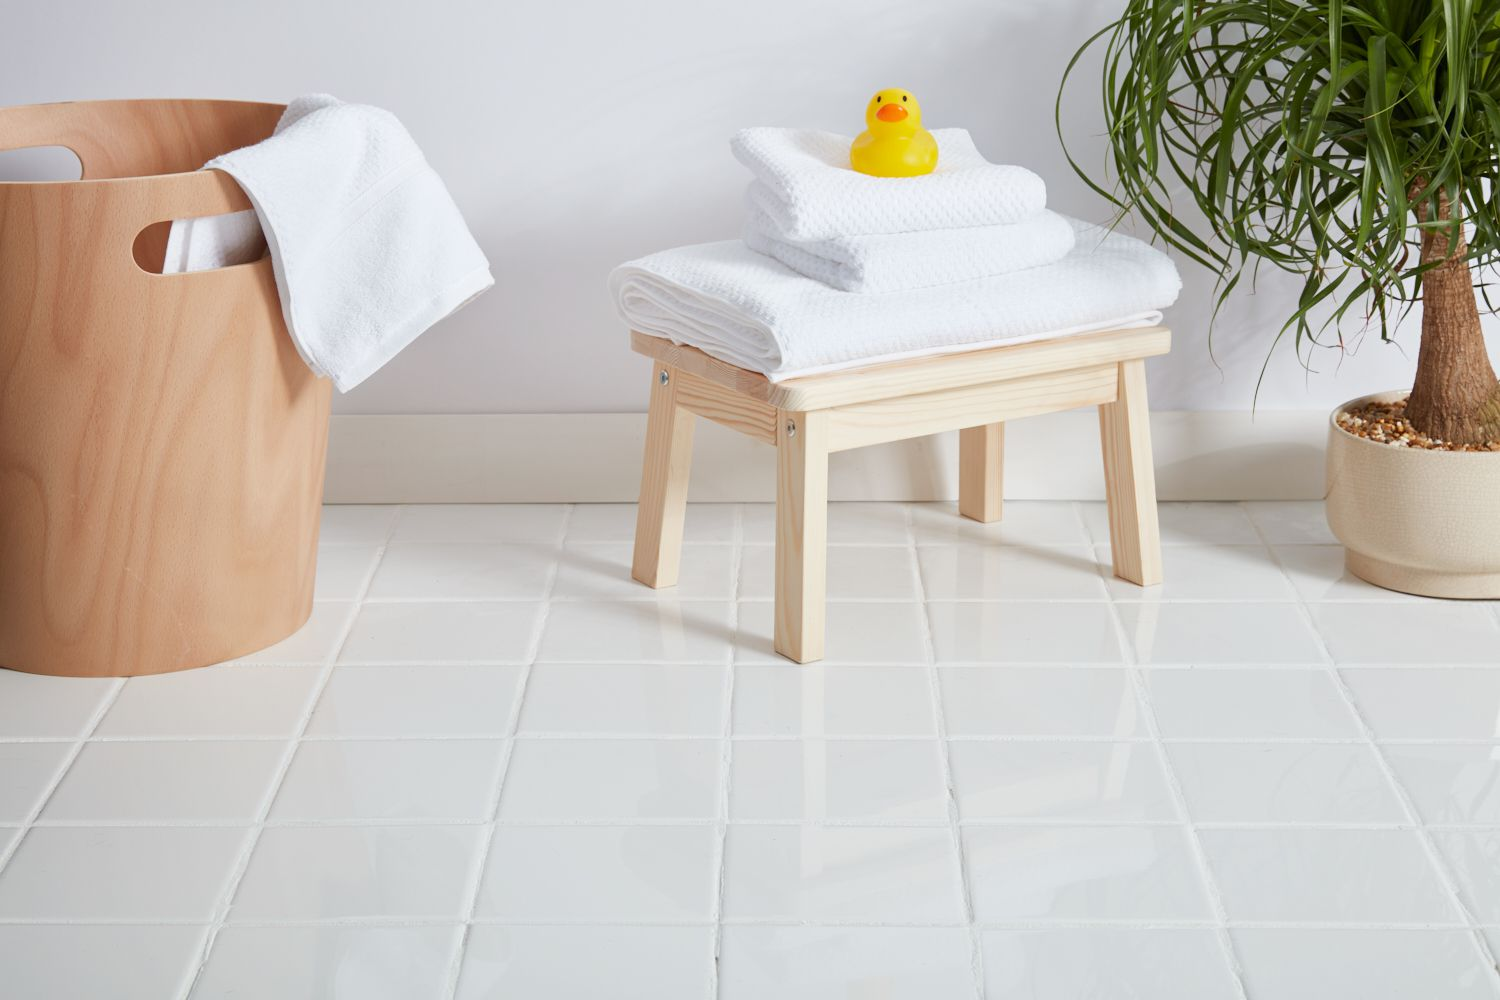 Why Should One Prefer Ceramic Tiles At Home?